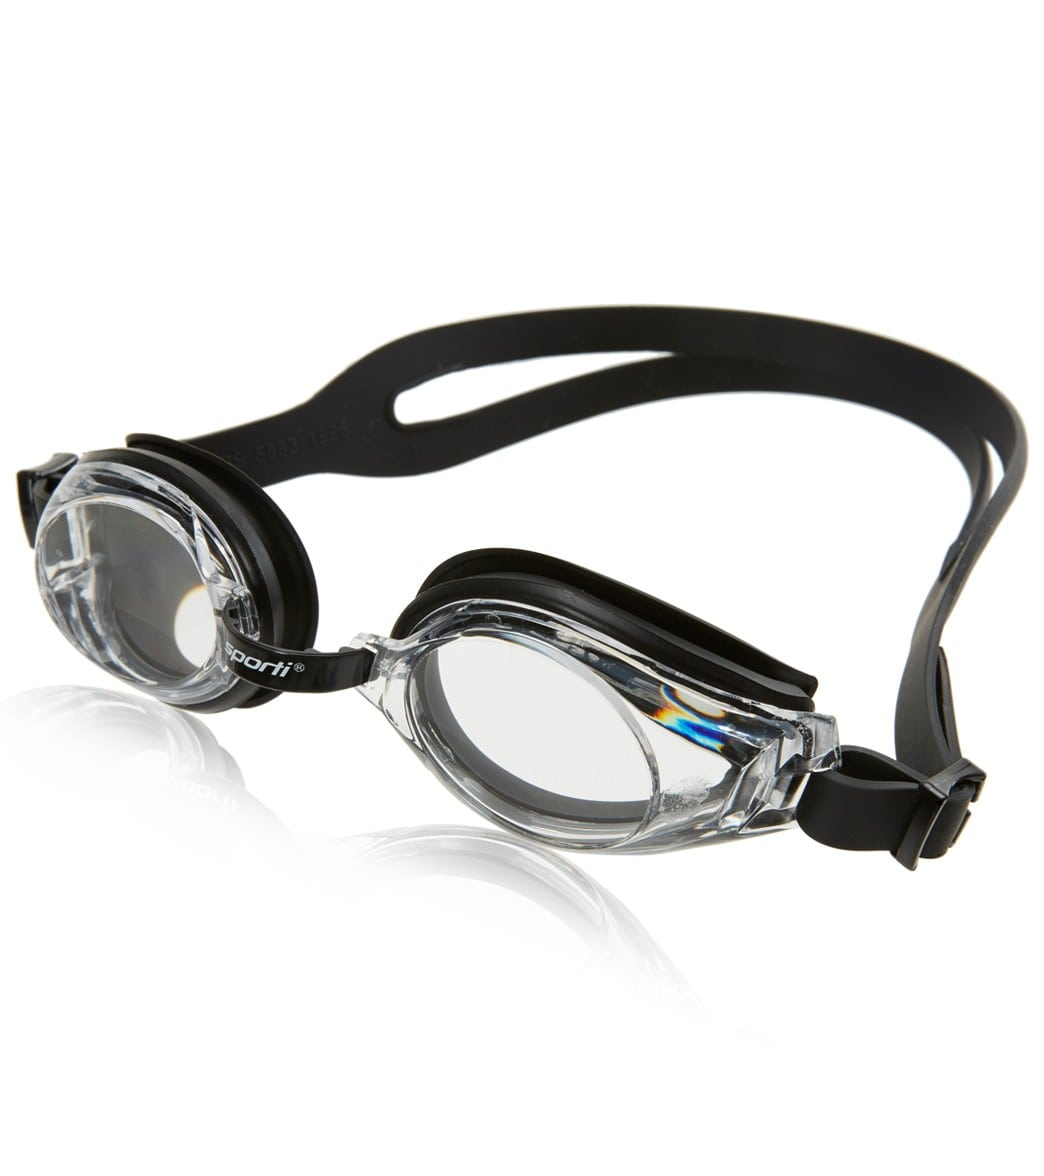 65e9e75815 Sporti Antifog Positive Optical Goggle at SwimOutlet.com